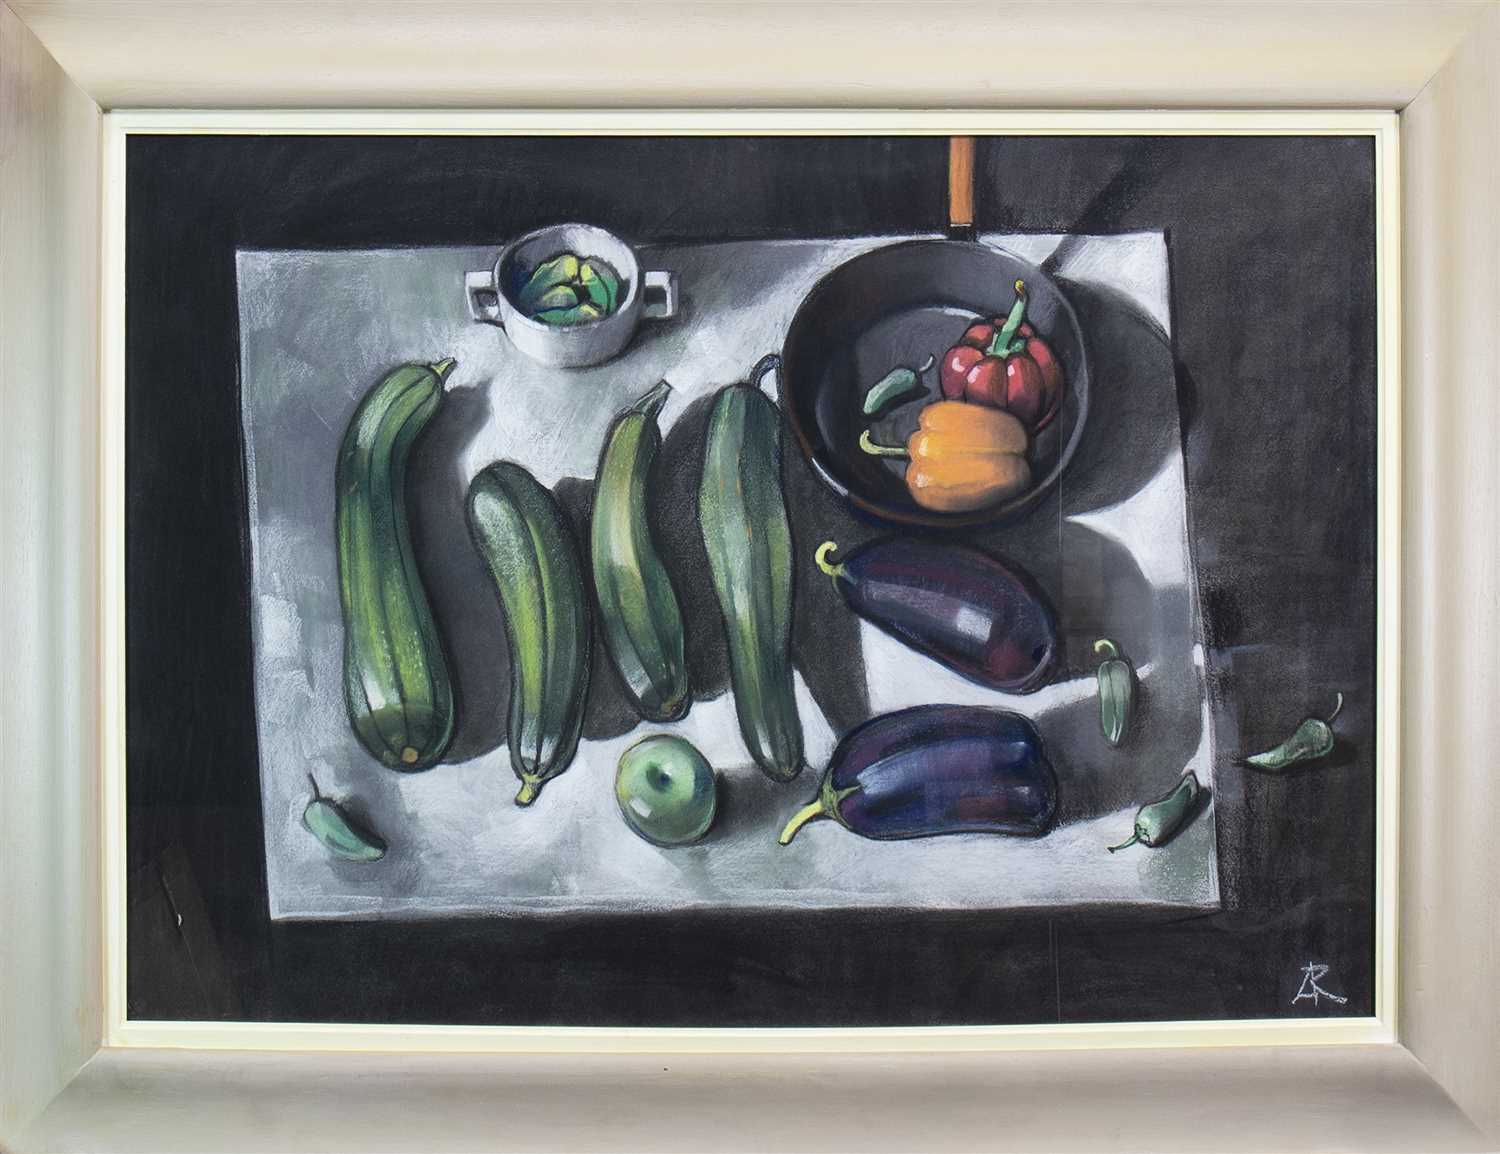 Lot 561 - COURGETTES AND AUBERGINES, A PASTEL BY ALEXANDER ROBB